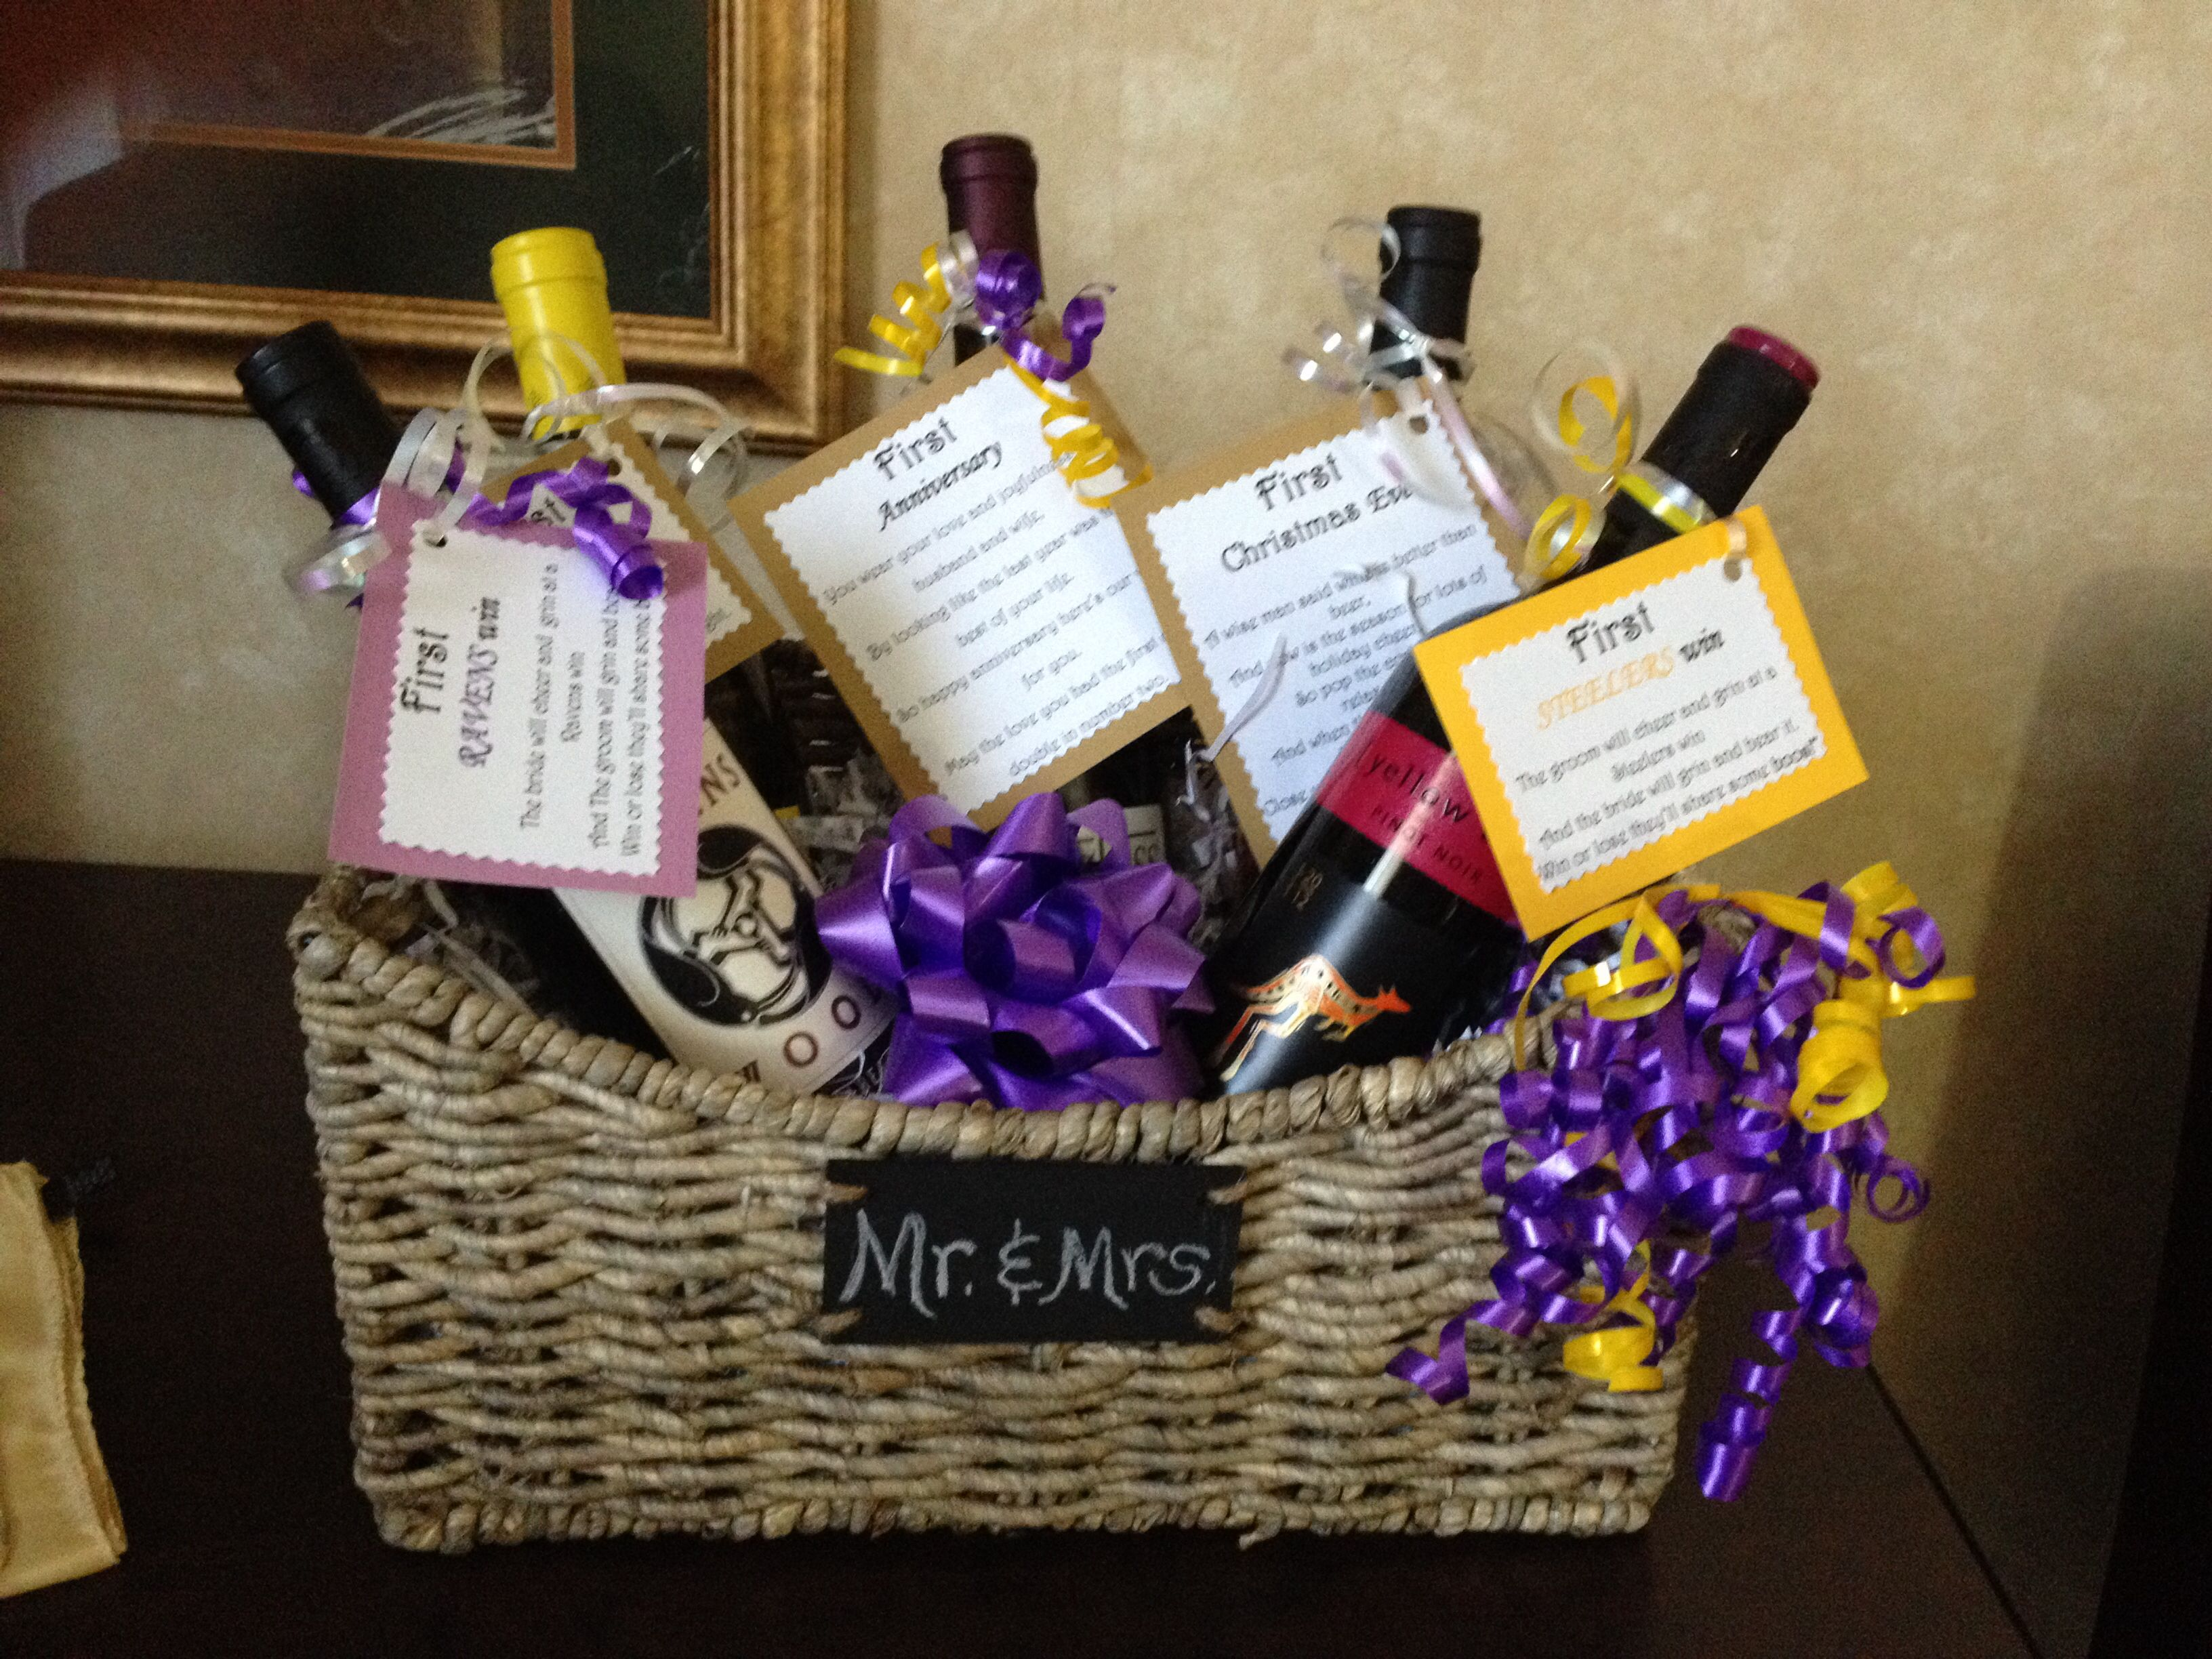 My version of the wedding wine basket. I had to add bottles for ravens and steelers to go with the theme of my sister-in-law's wedding. This was fun to make!